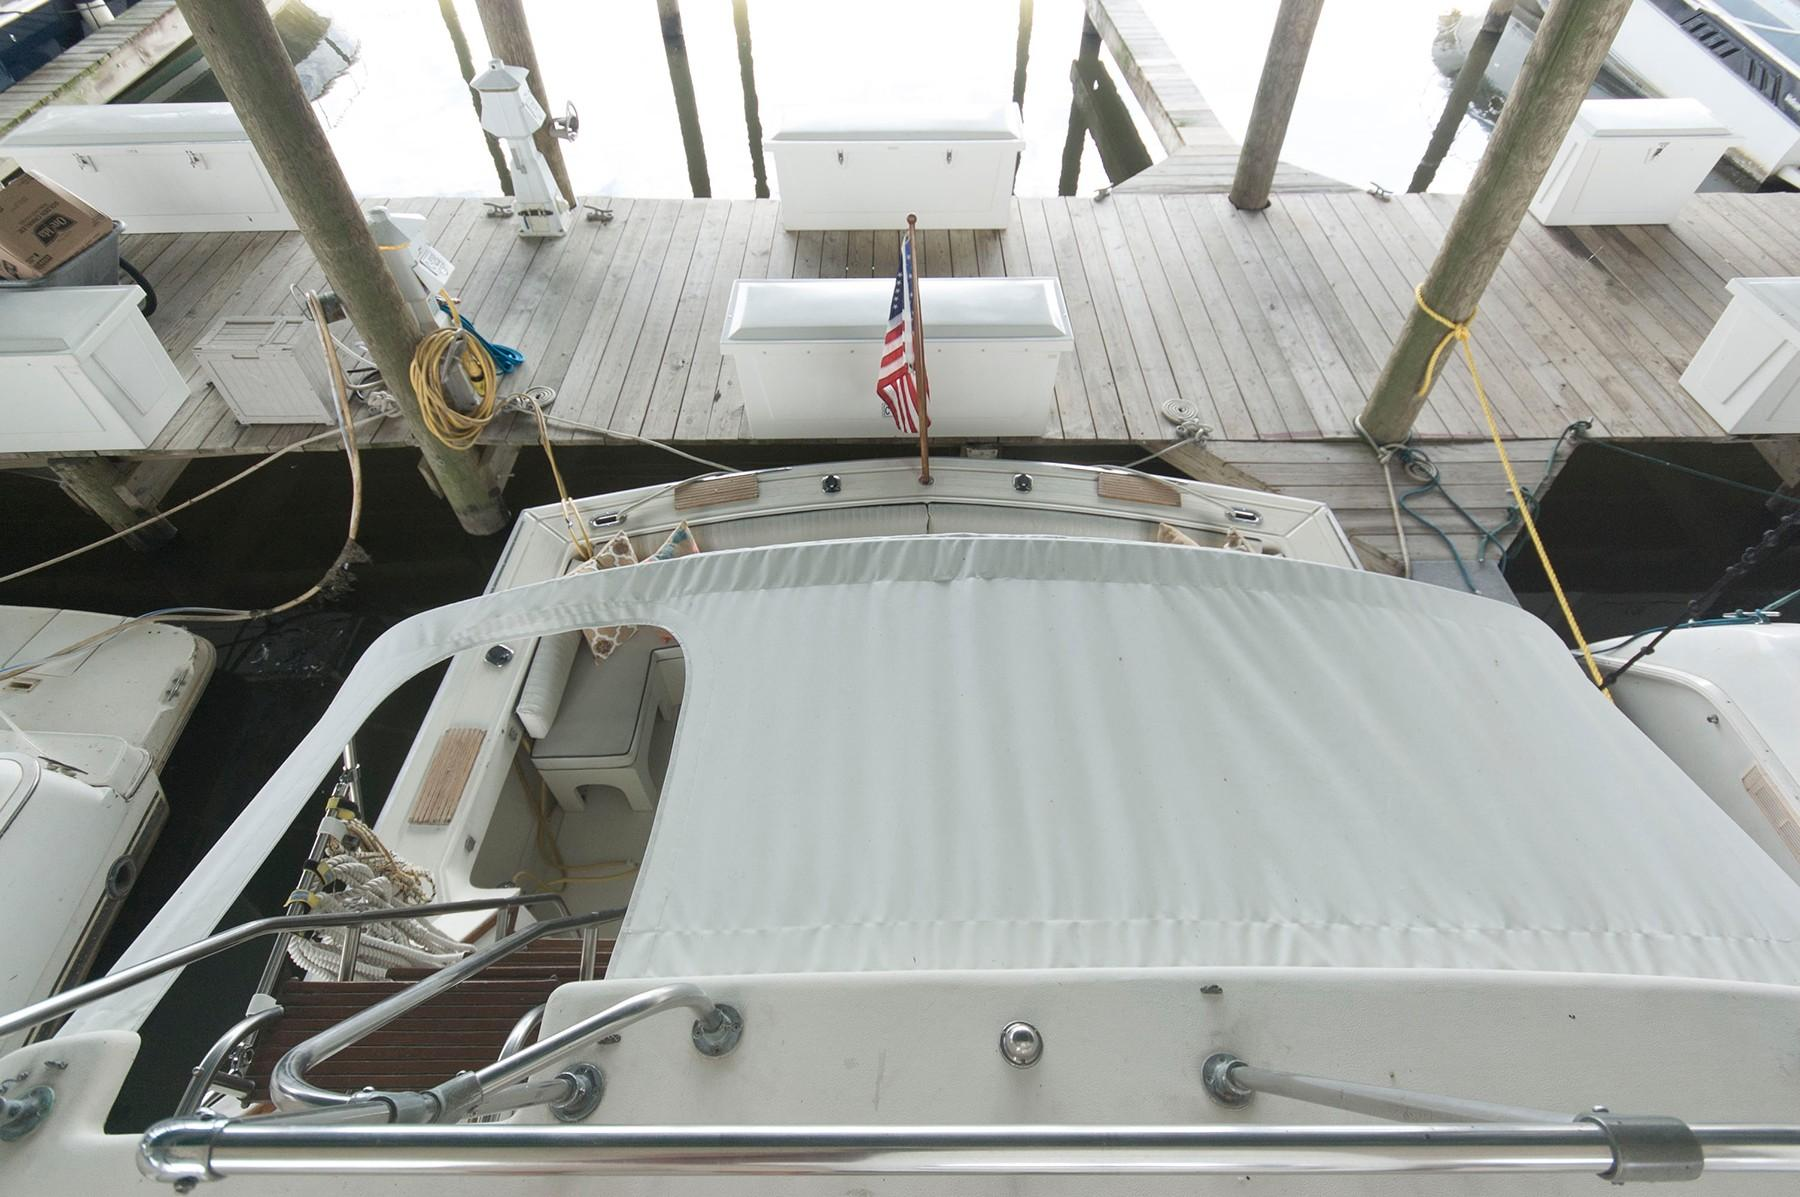 M 5904 VR Knot 10 Yacht Sales